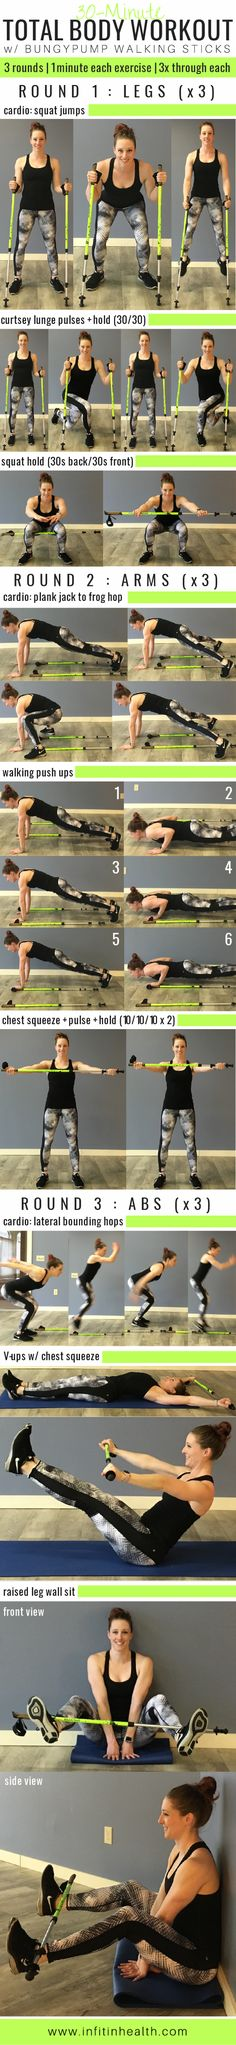 30-Minute Total Body Workout w/ Walking Poles | Posted By: CustomWeightLossProgram.com